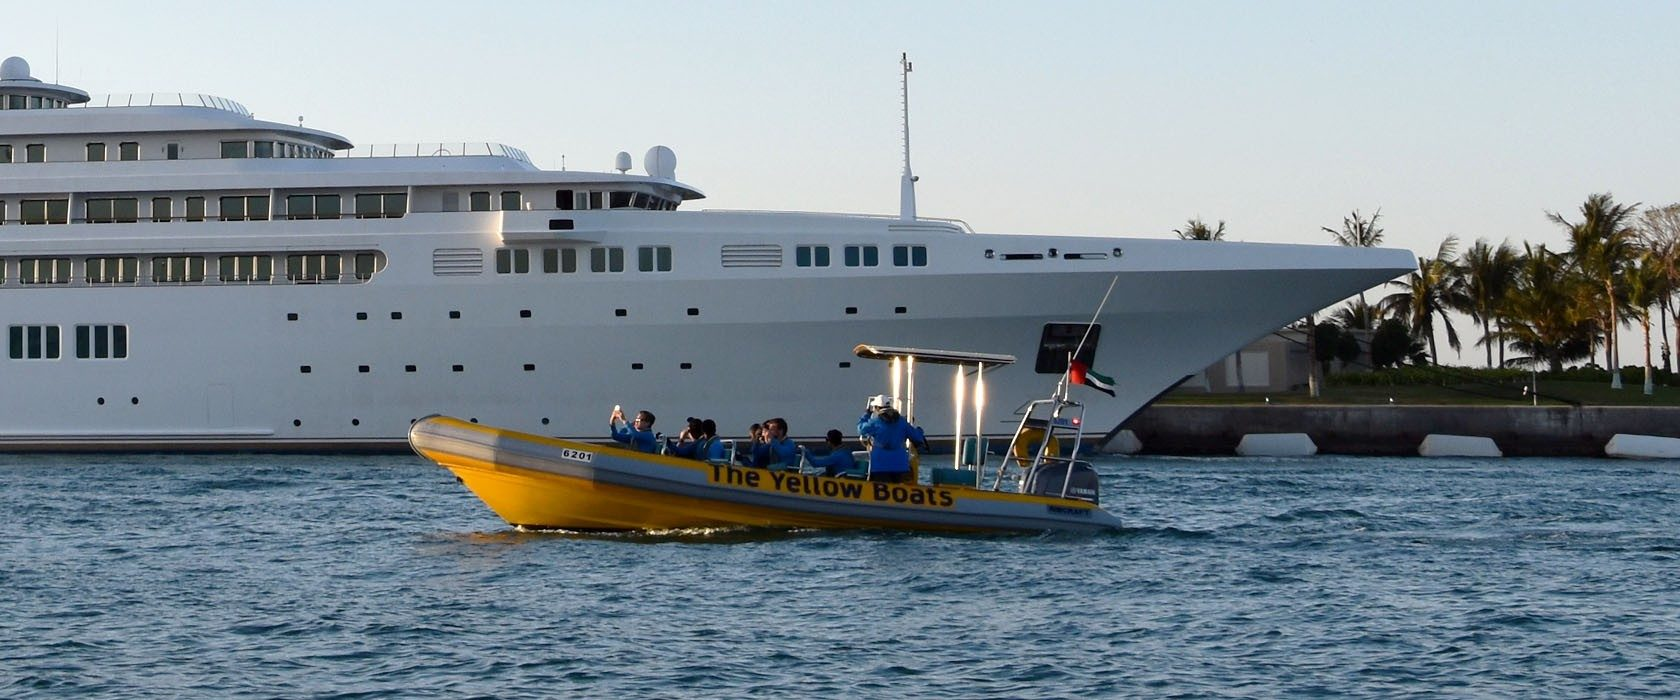 The Yellow Boats Sightseeing Tours in Dubai